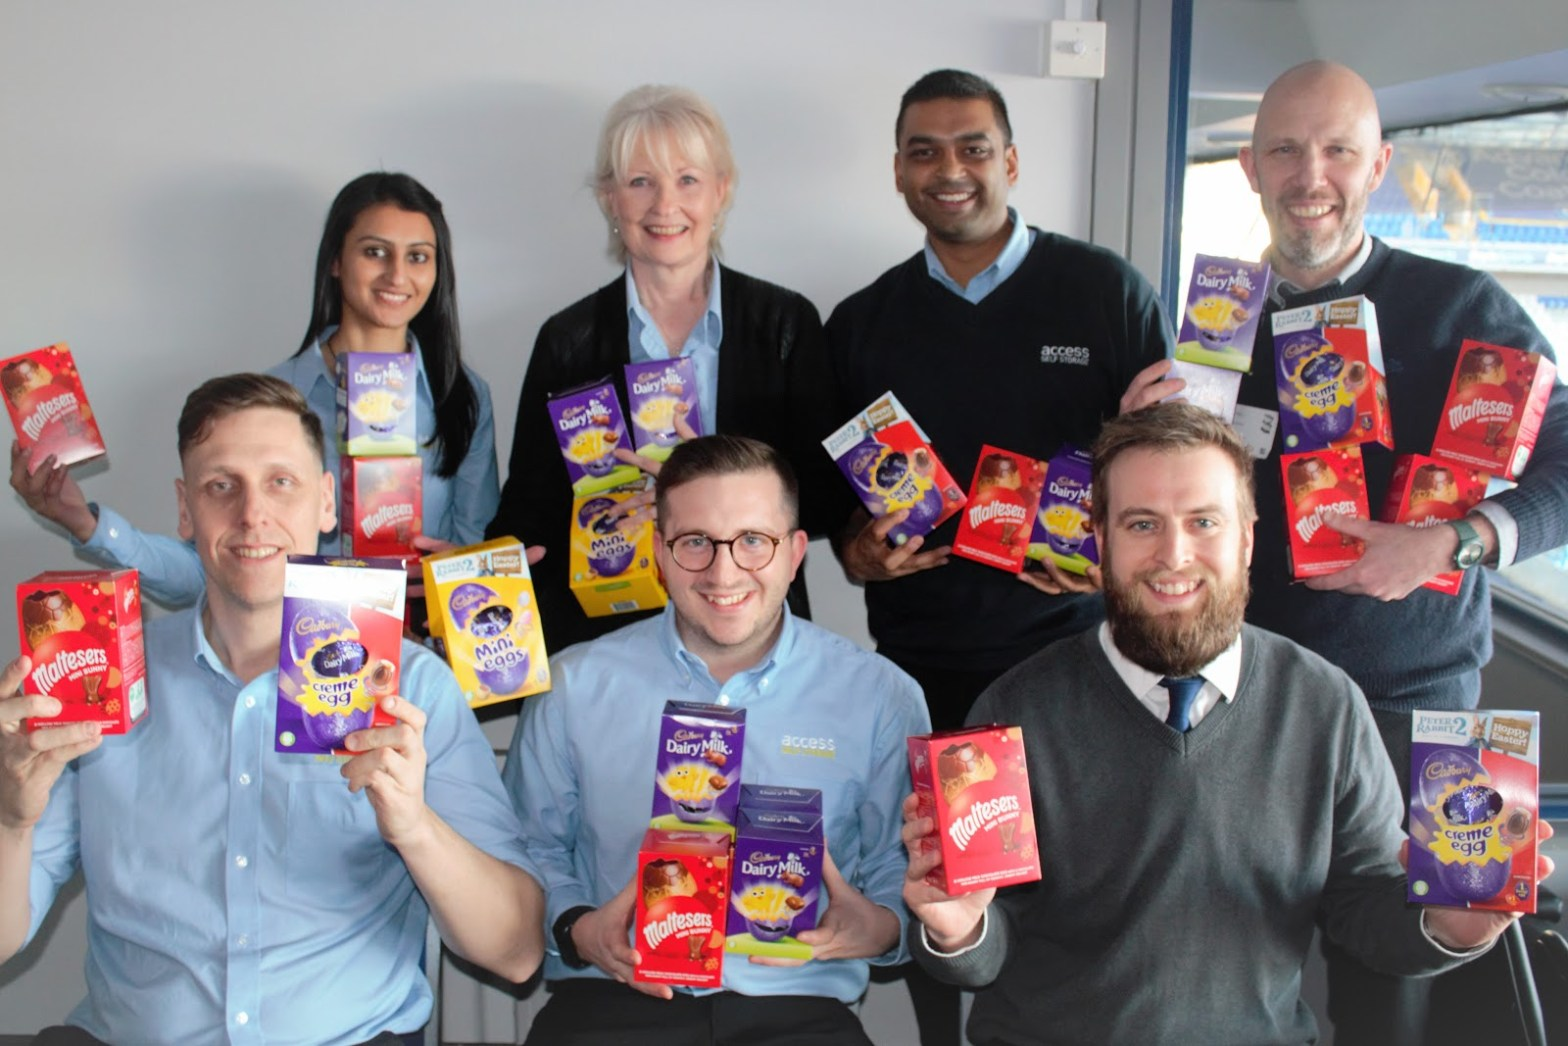 Access Self Storage Easter Egg collection